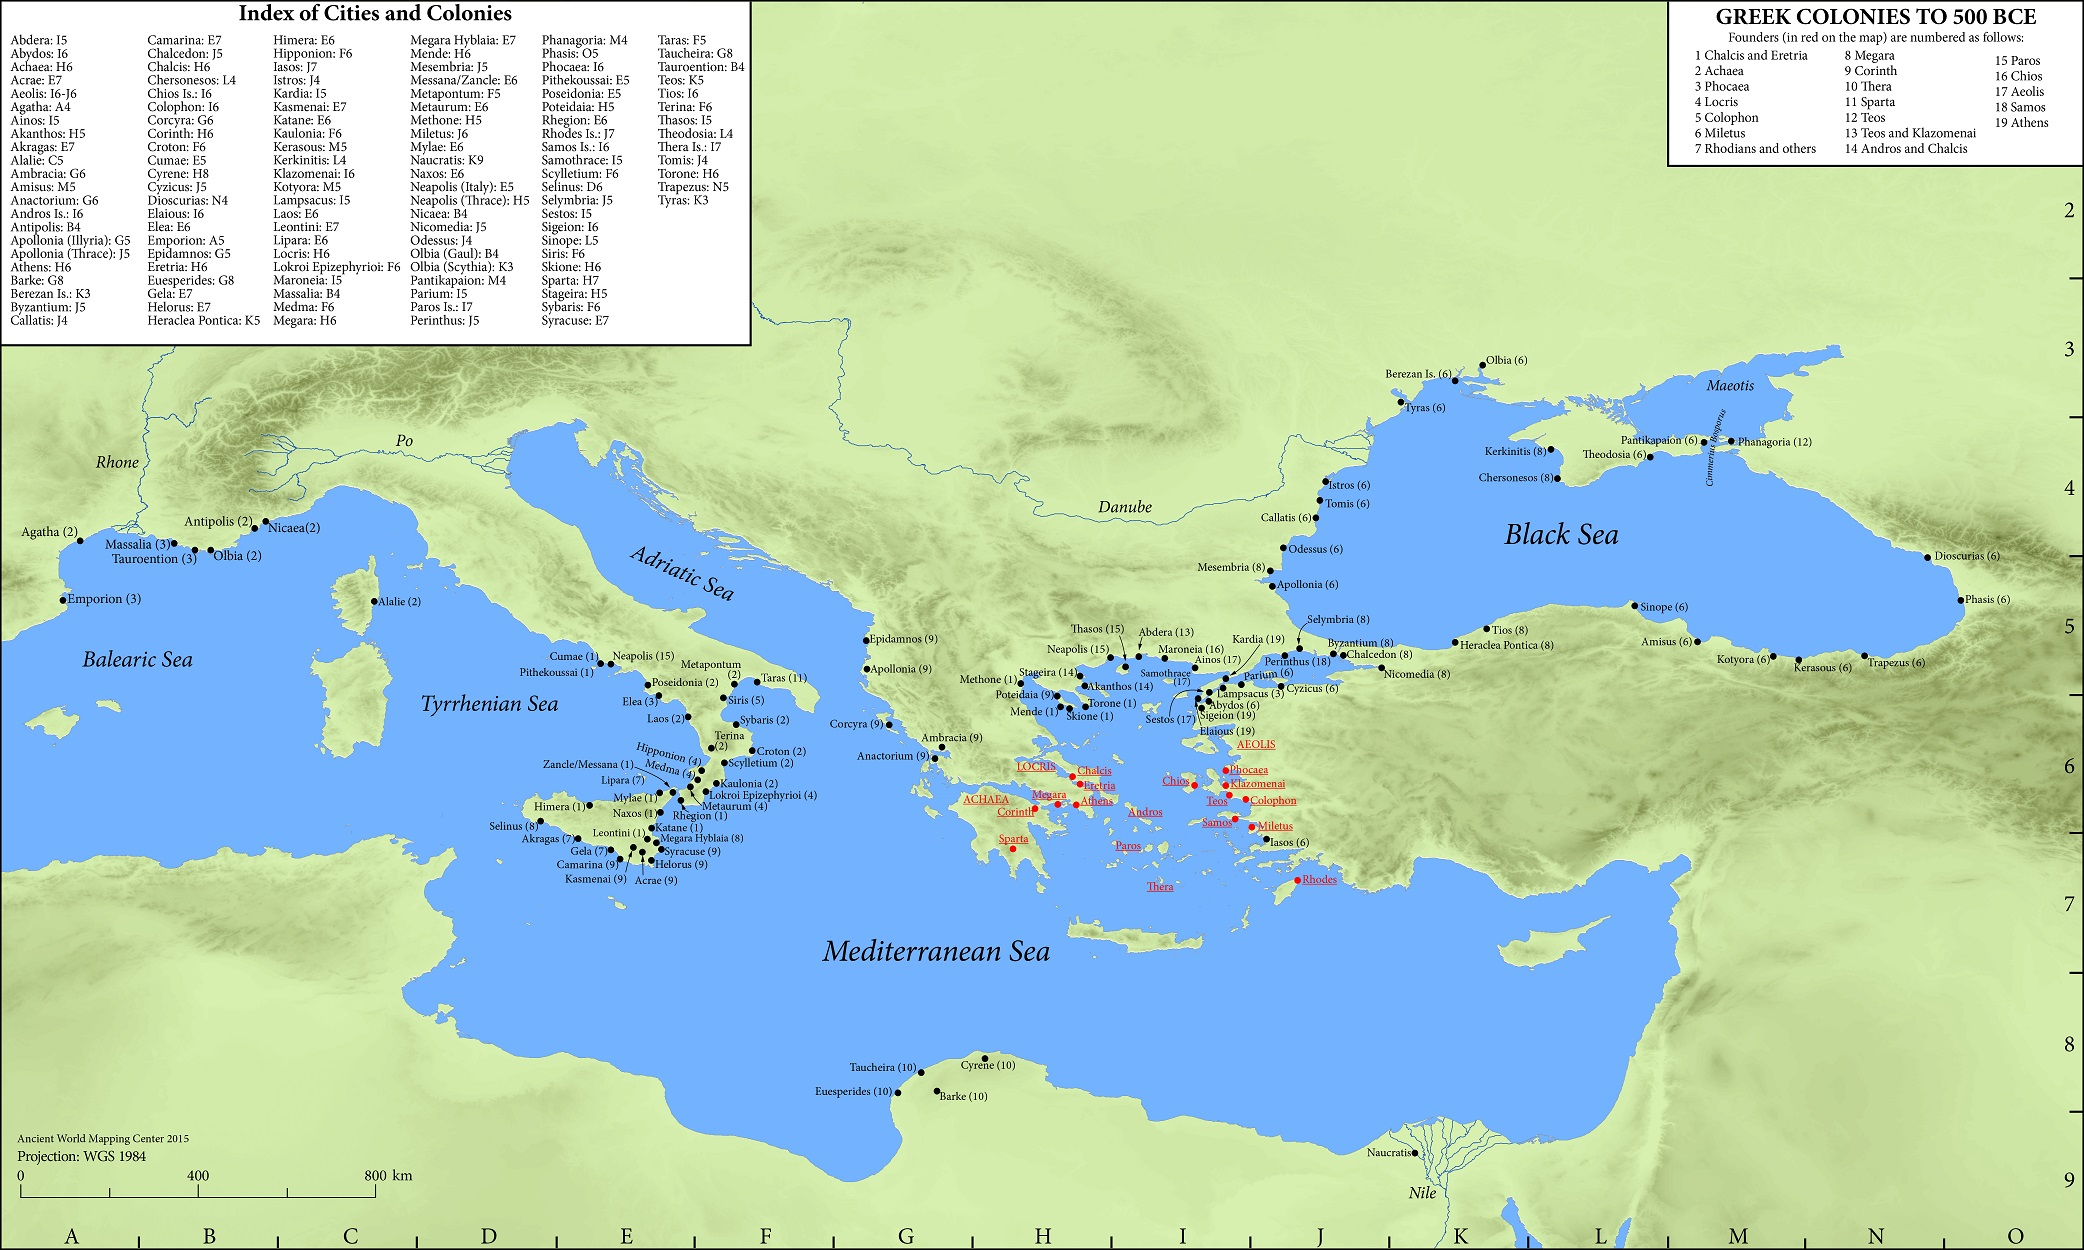 Maps of the ancient world oxford classical dictionary greek colonies to 500 bce gumiabroncs